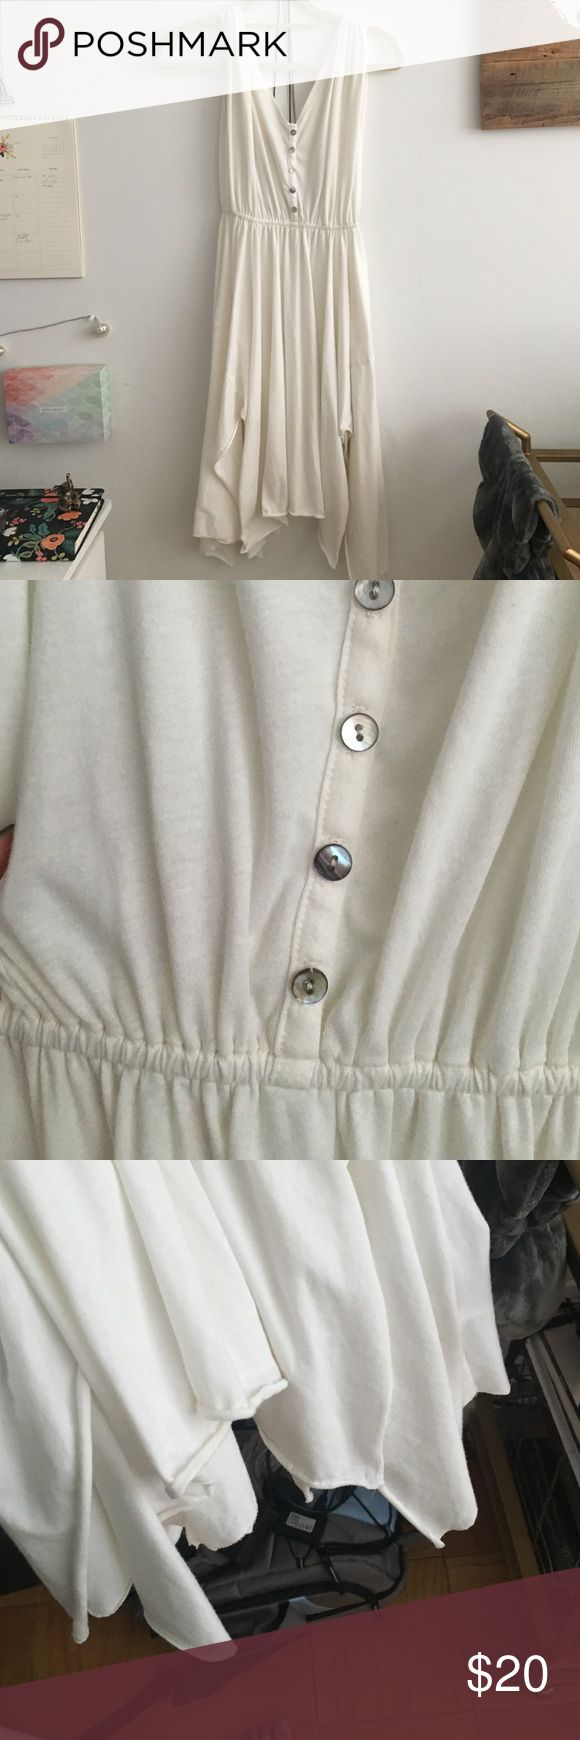 Free people white dress with shell buttons This is super cute free people beach dress, it's flowy at the bottom and has shell buttons. Size Xsmall but it is loose and would fit a small or medium as well Free People Dresses